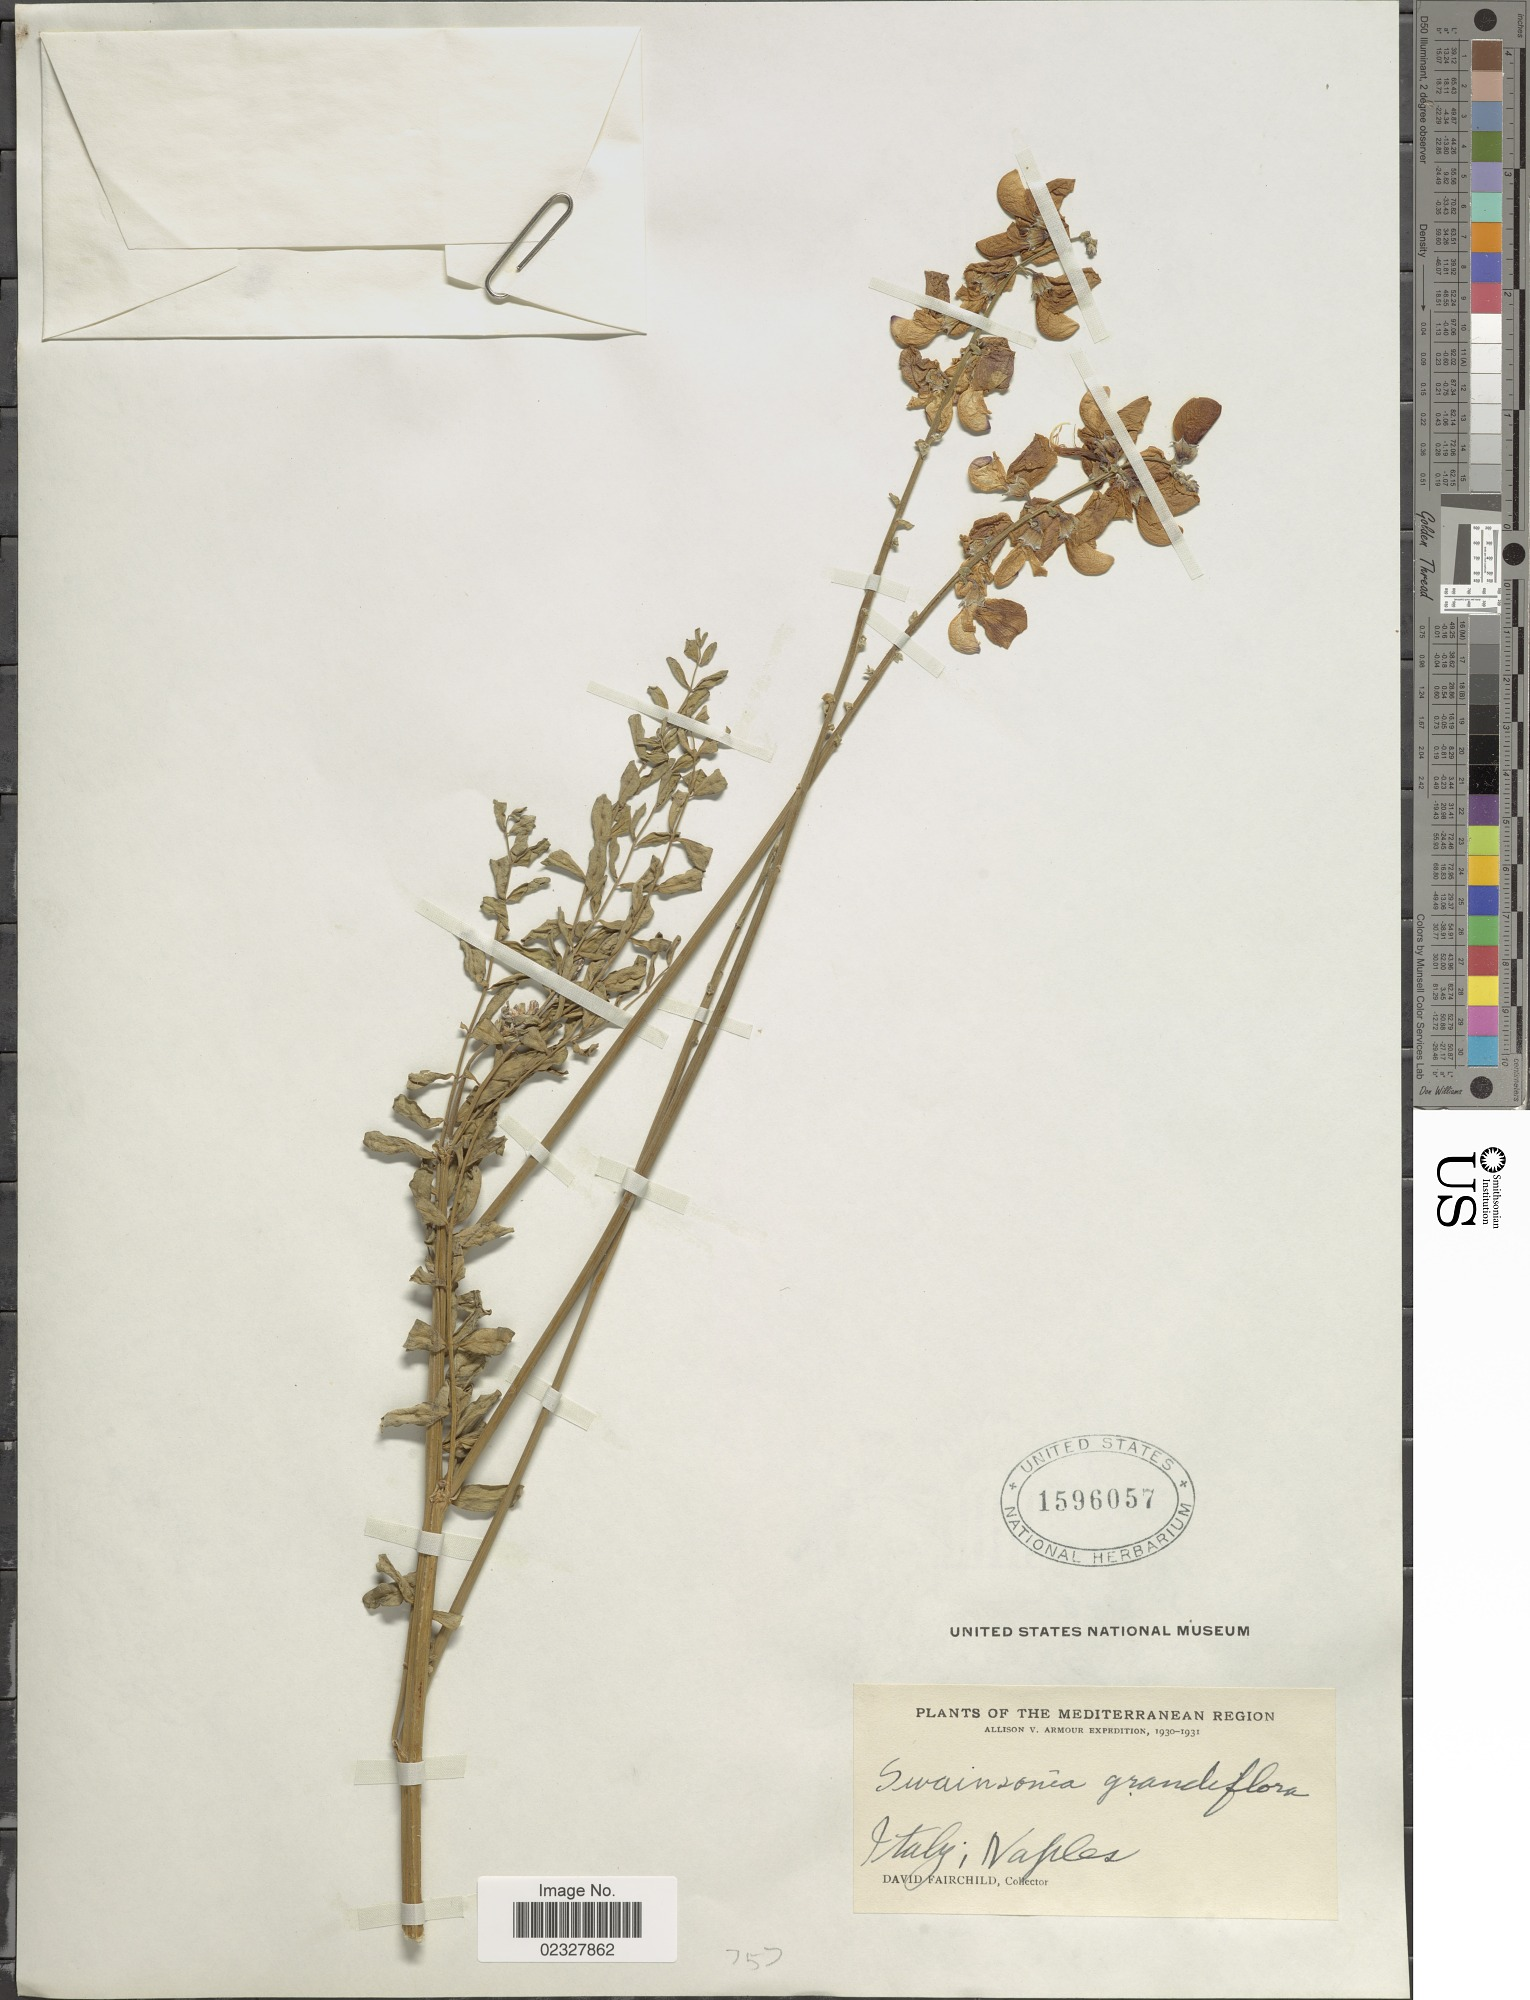 images for Swainsona grandiflora R. Br.